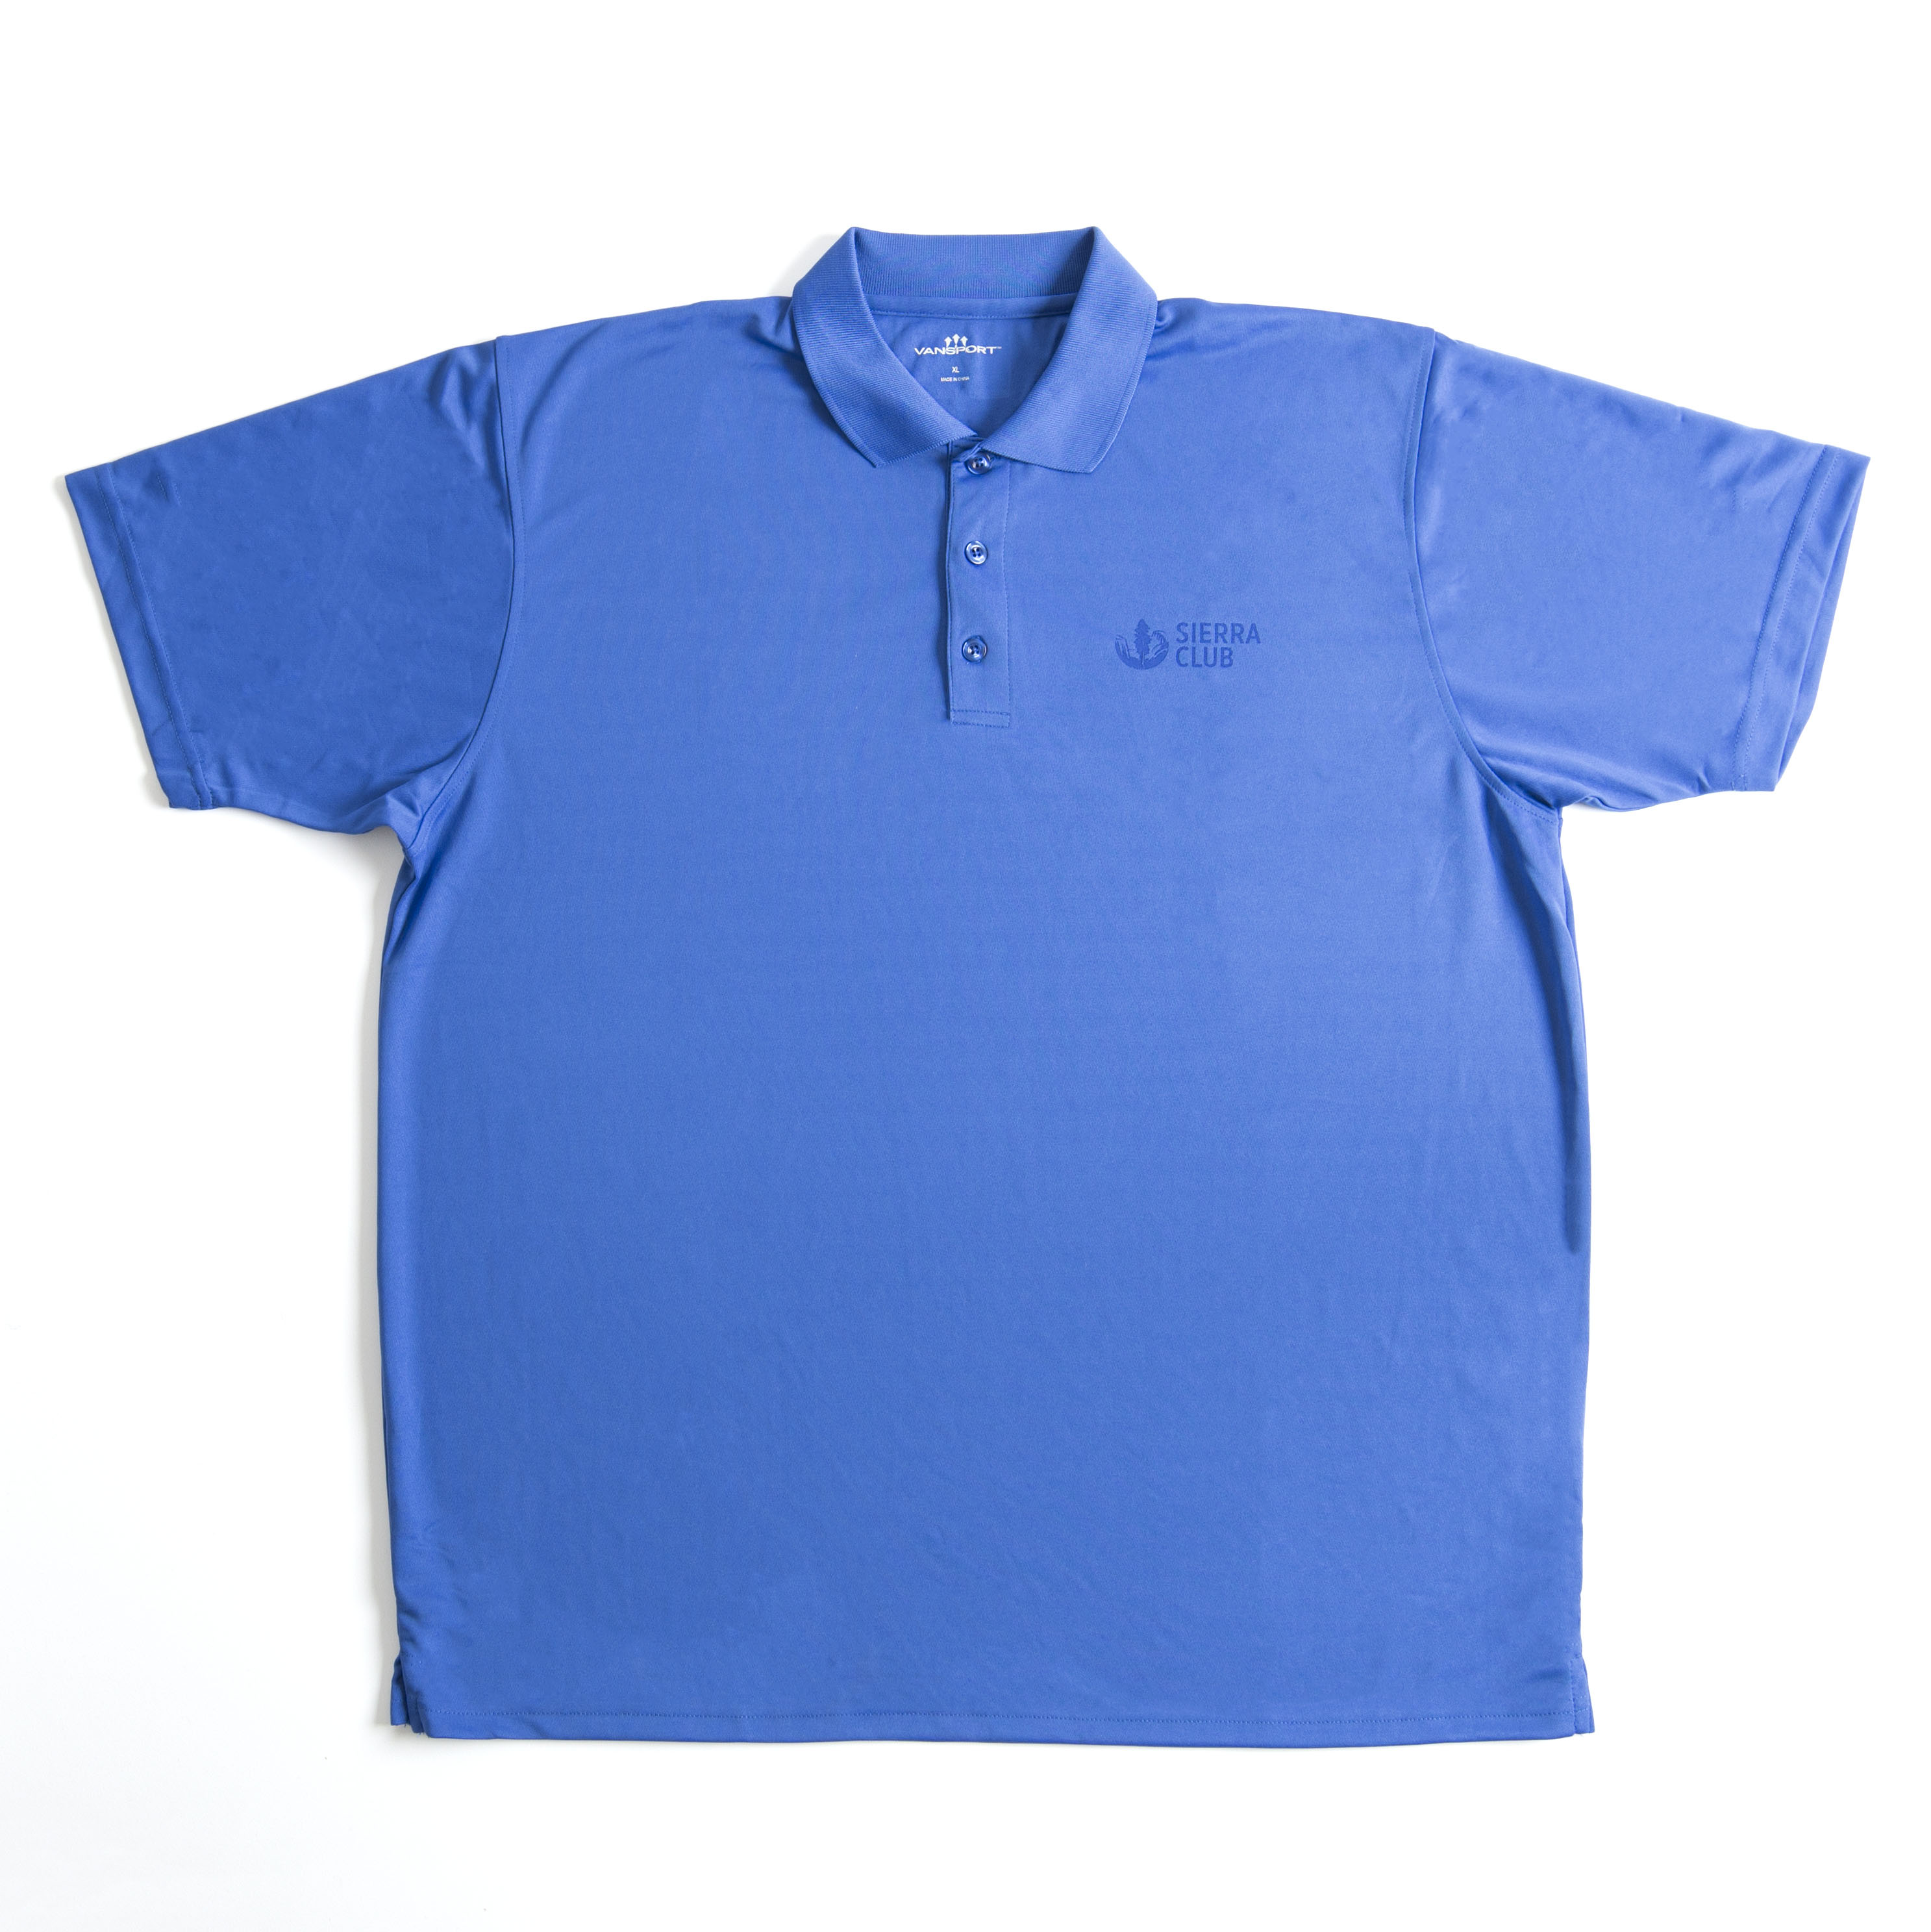 Sierra Club Polo Shirt